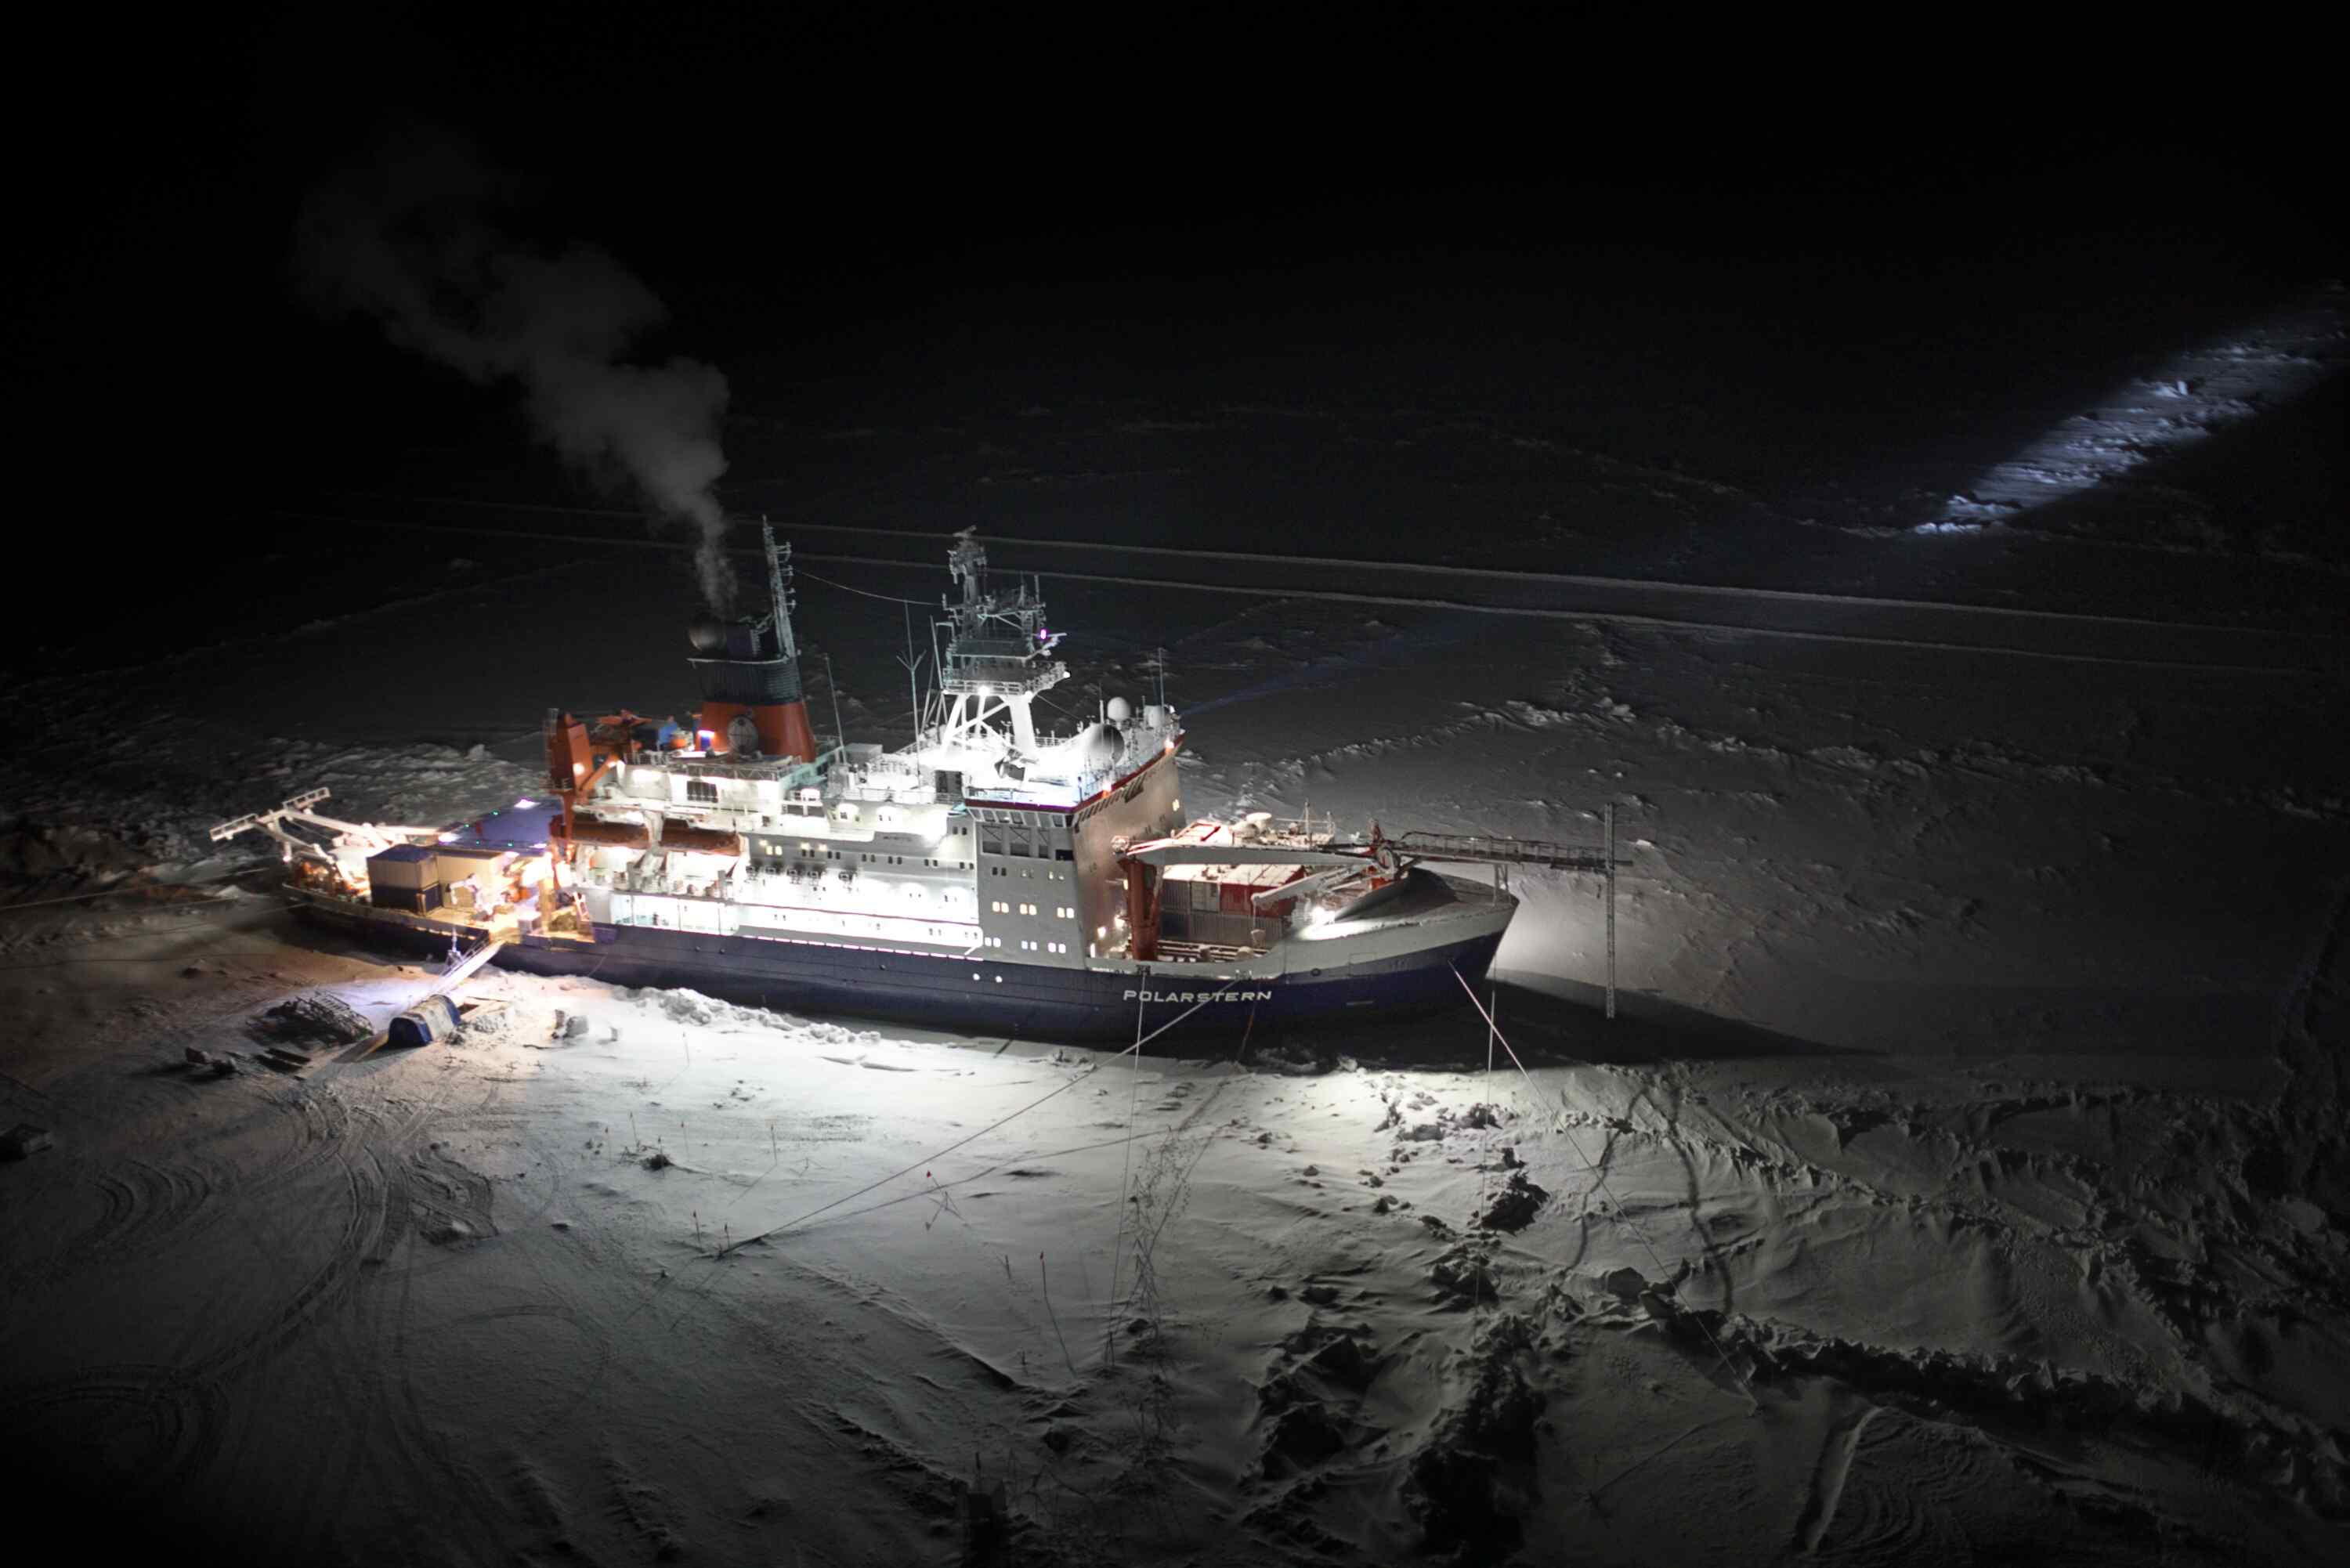 Polarstern in the Ice - M. Gallagher